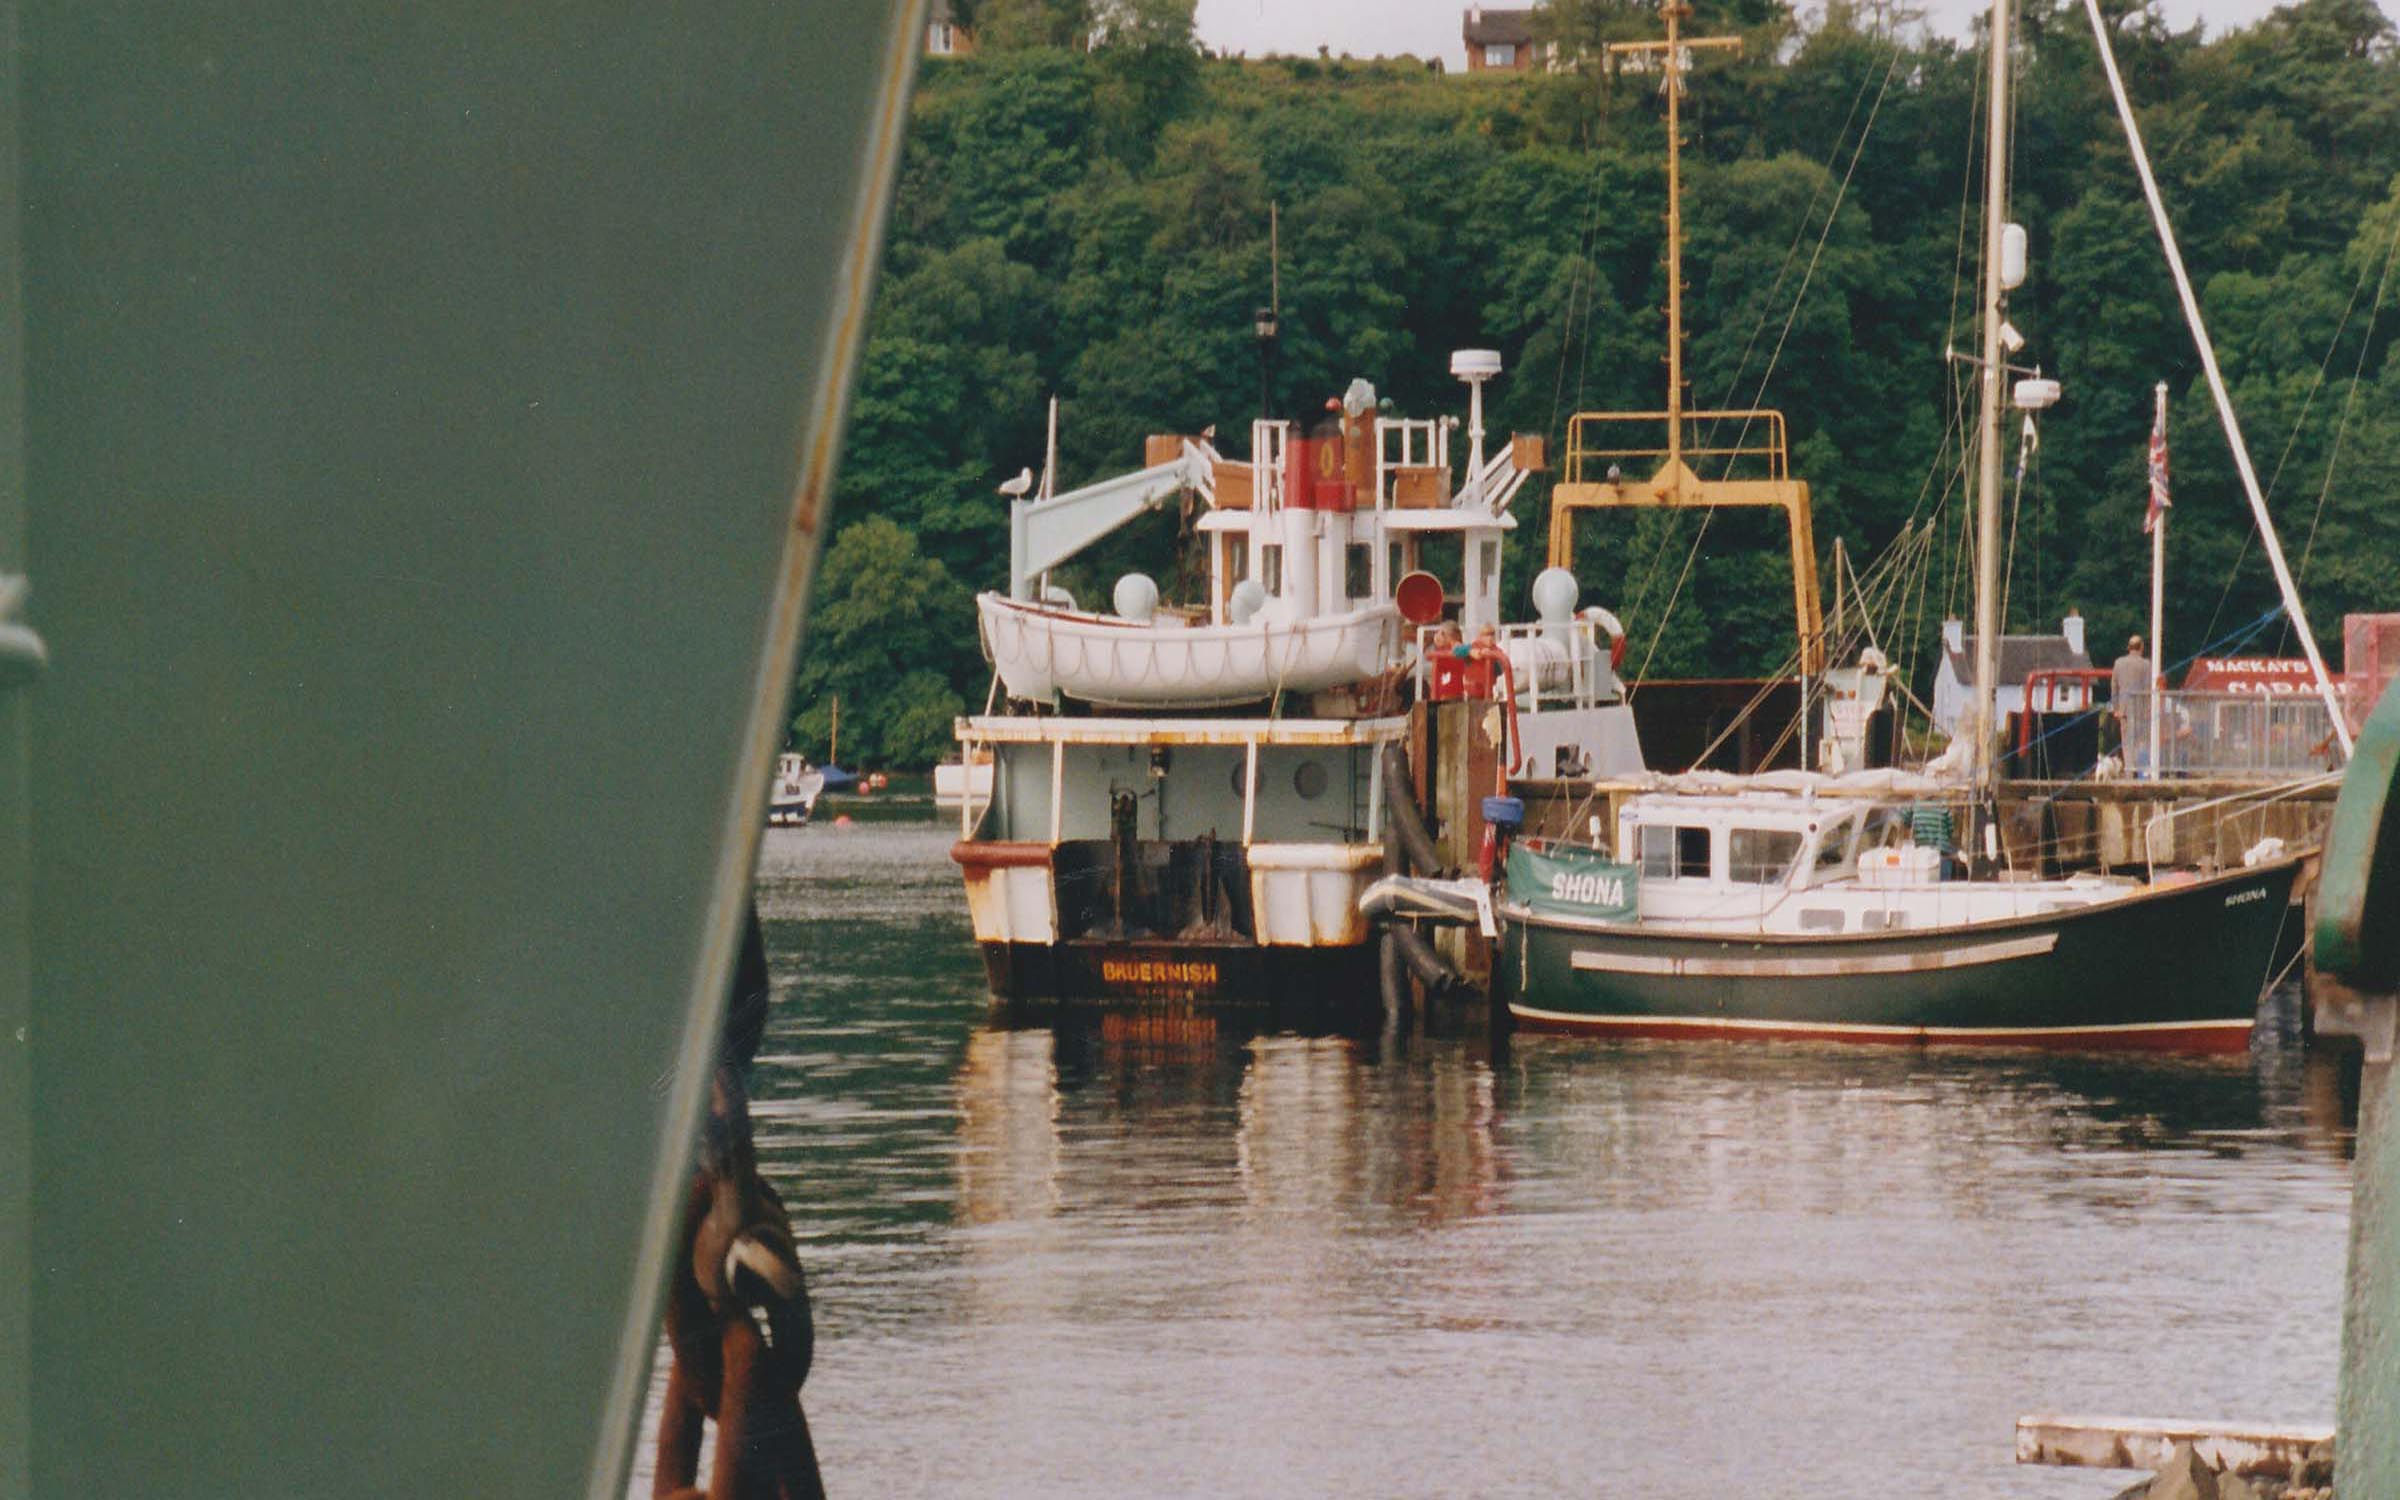 Bruernish at Tobermory pier, seen from Coll at the slipway (Ships of CalMac)